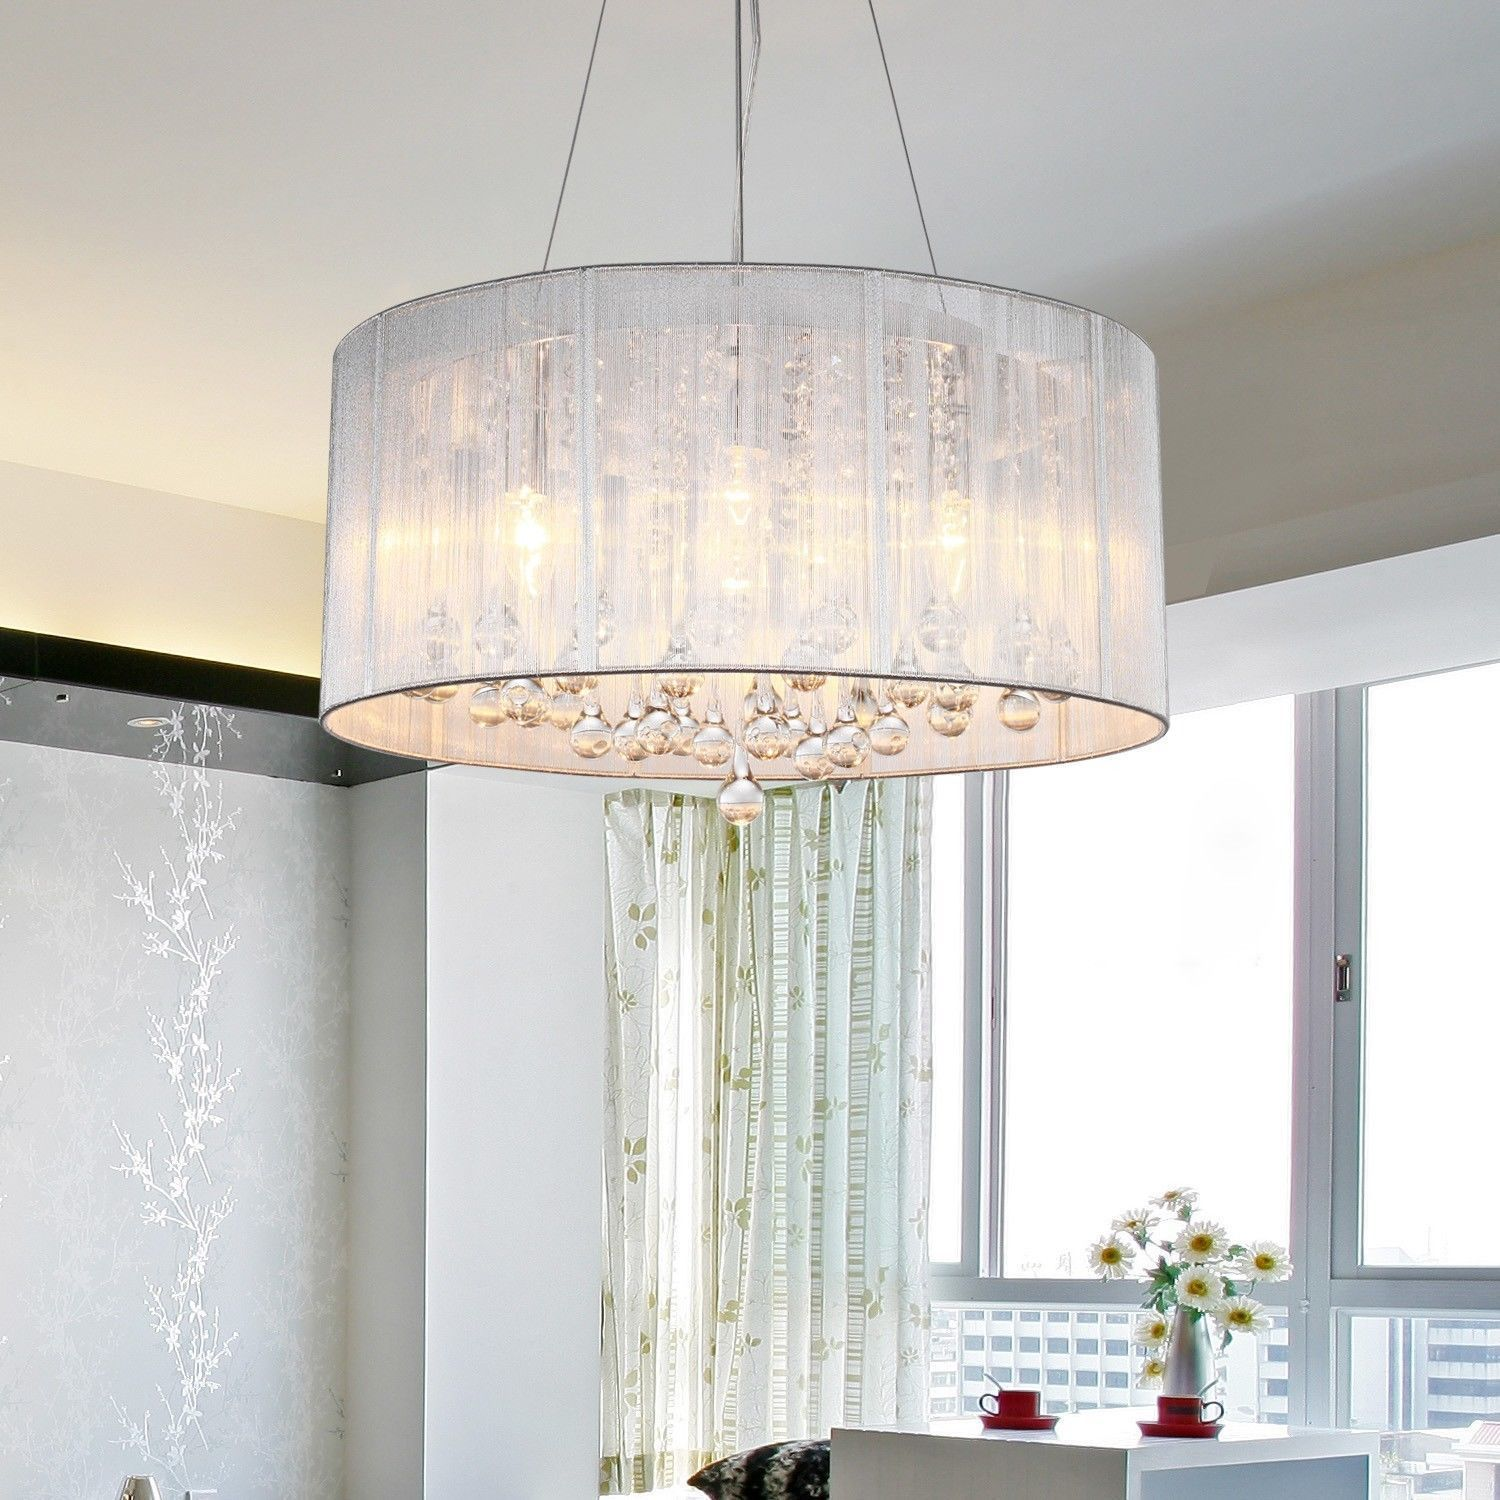 How to choose a chandelier lampshade